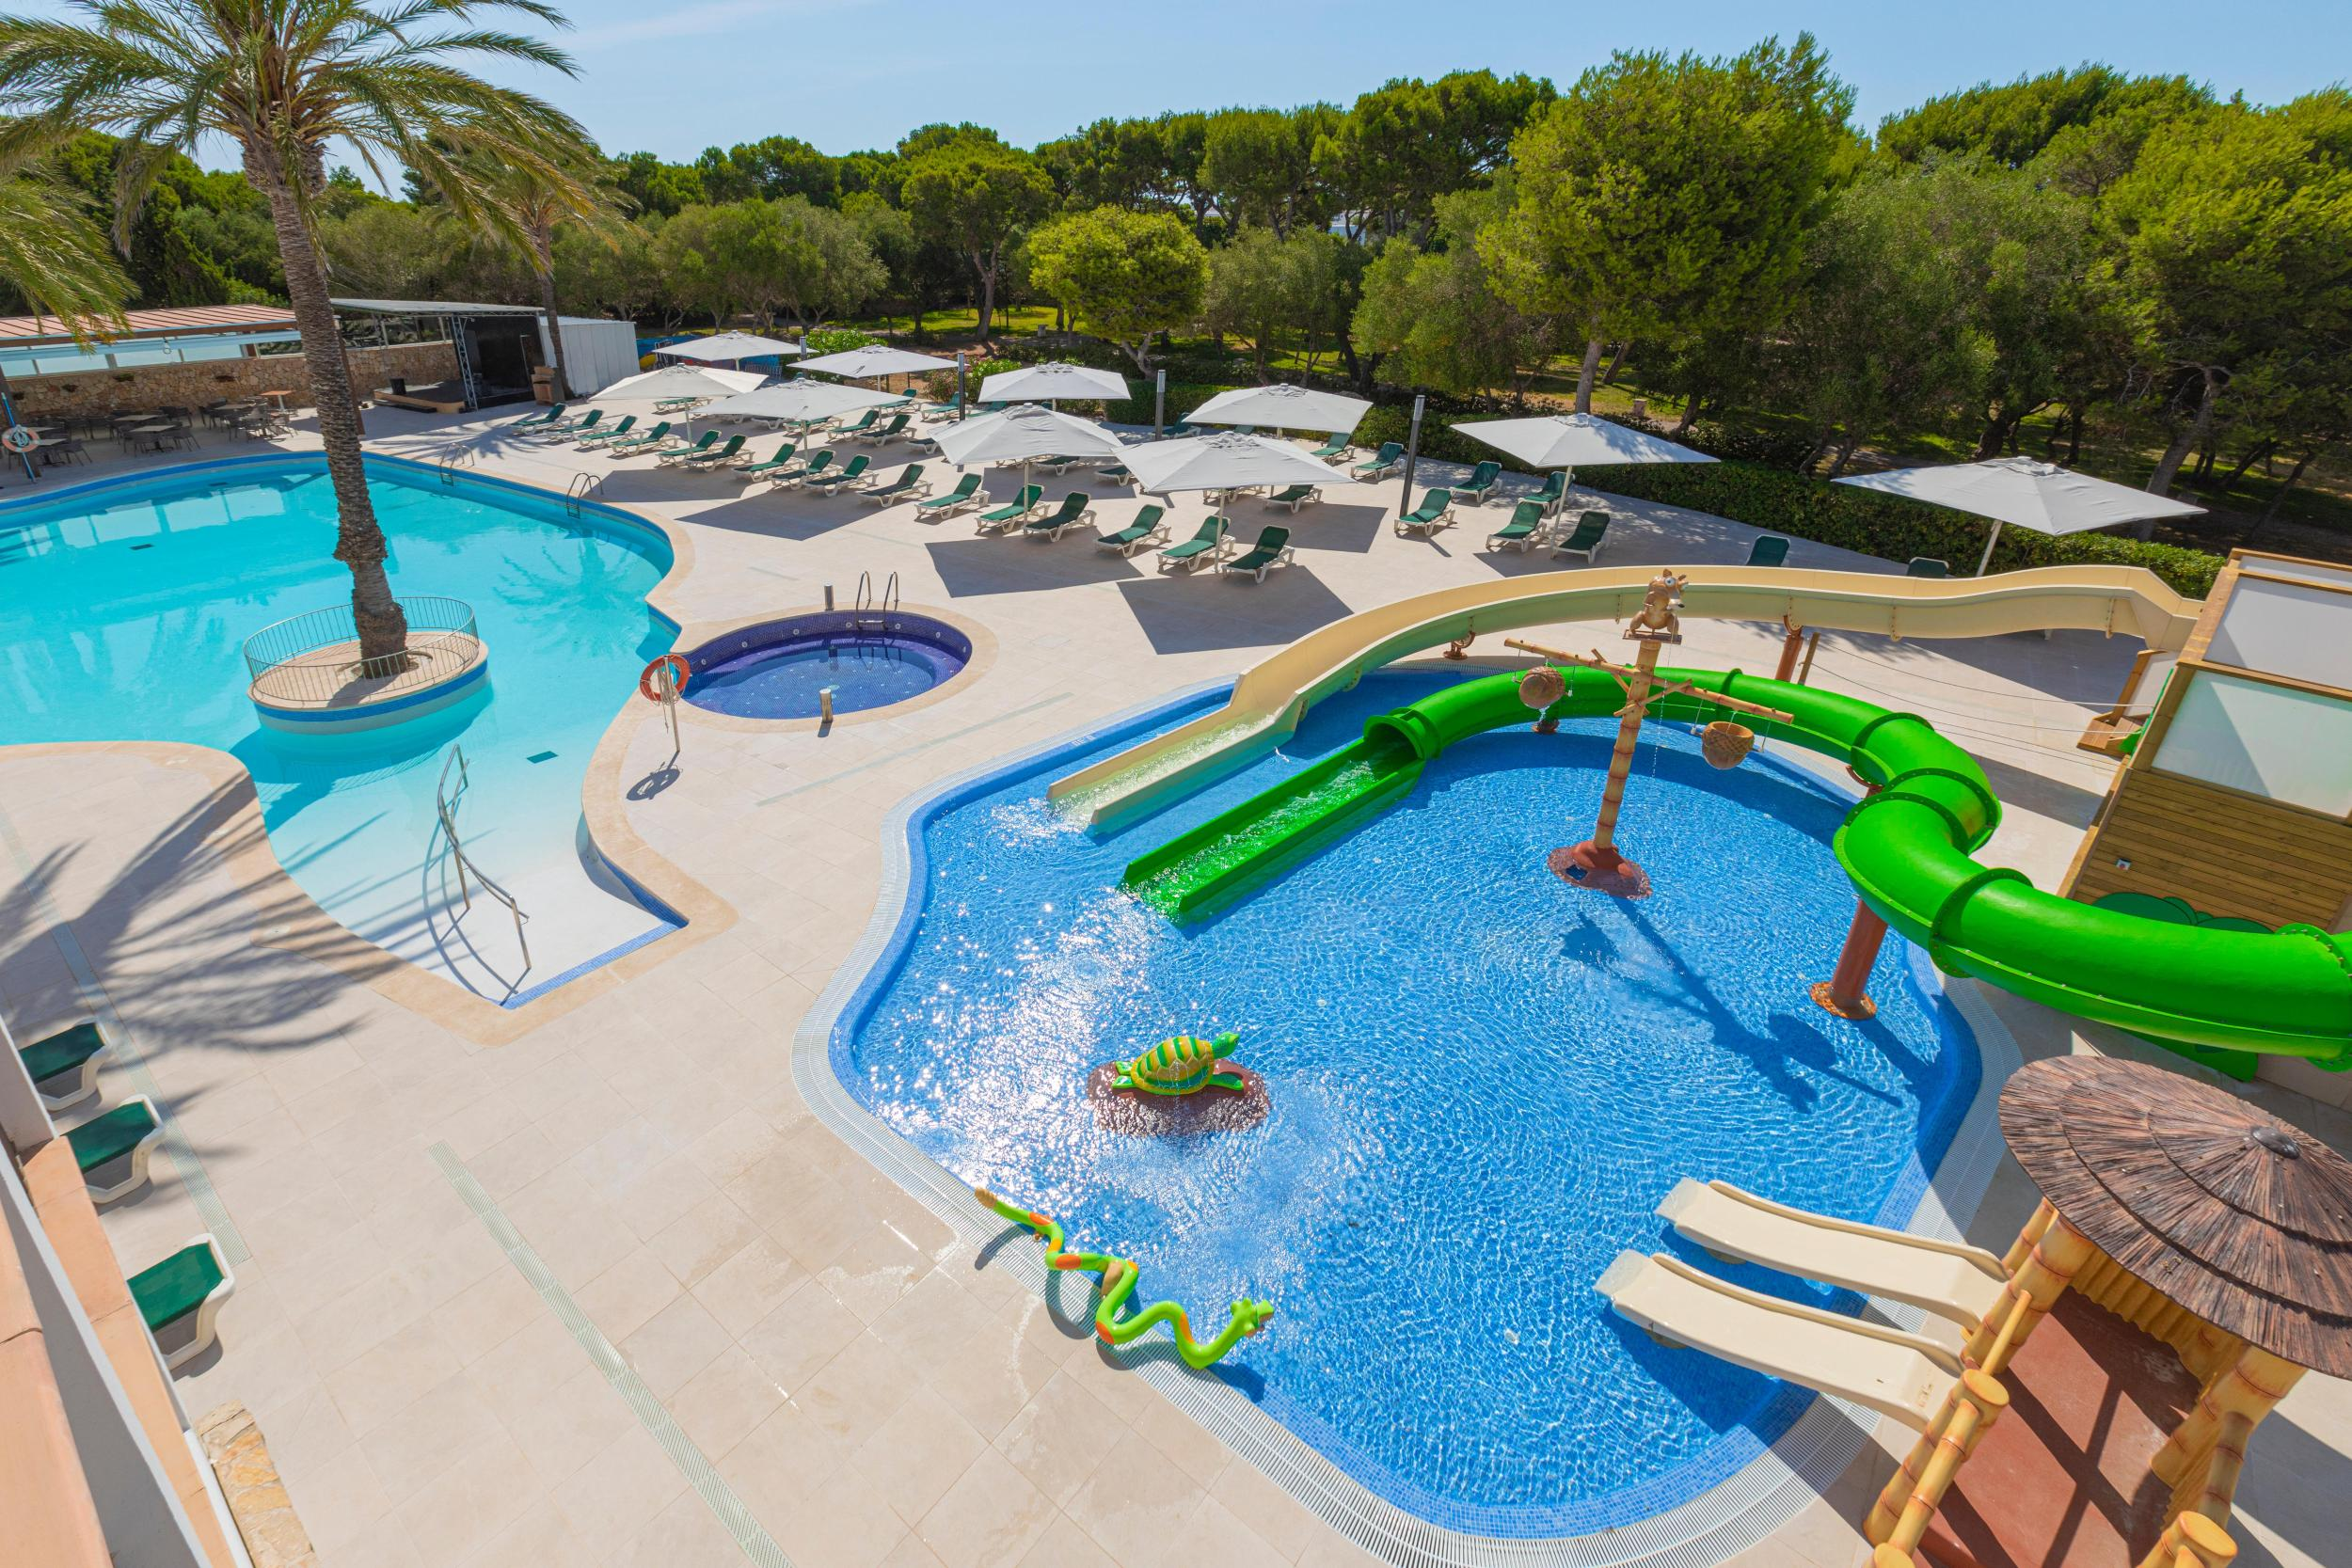 Cala d'Or Playa Apartments in Cala d'Or, Majorca, Balearic Islands